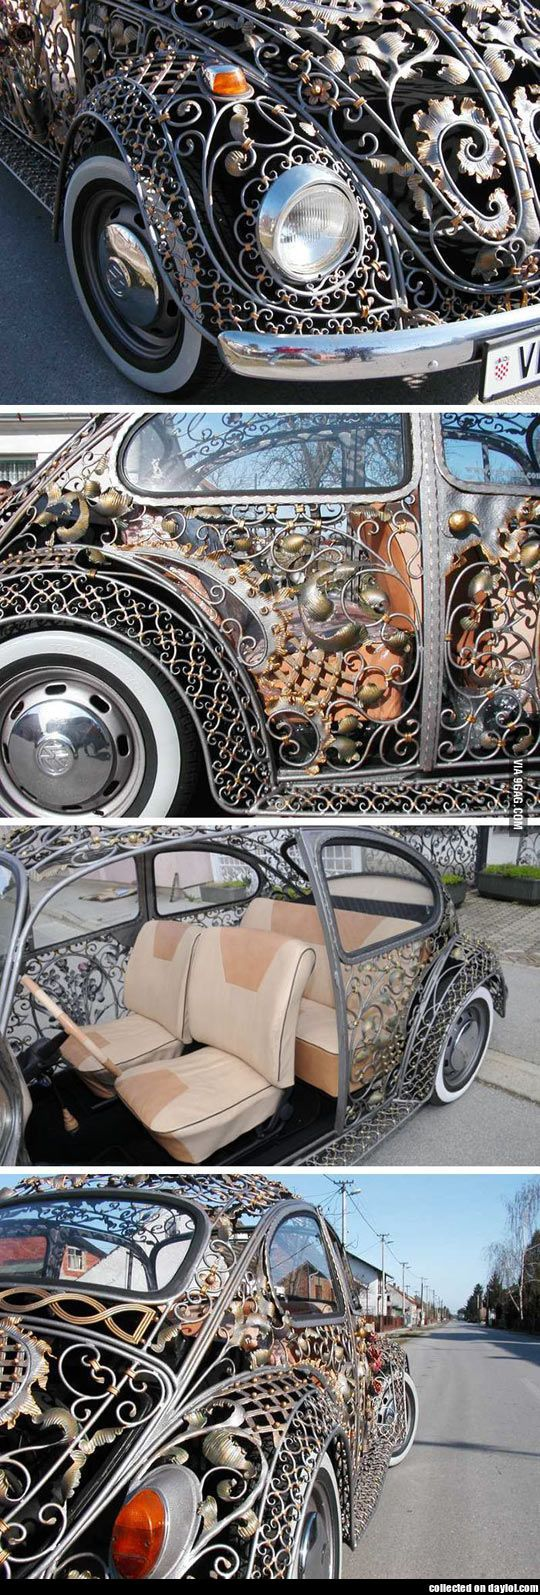 Volkswagen Beetle body from a Croatian metalwork shop This is awesome!